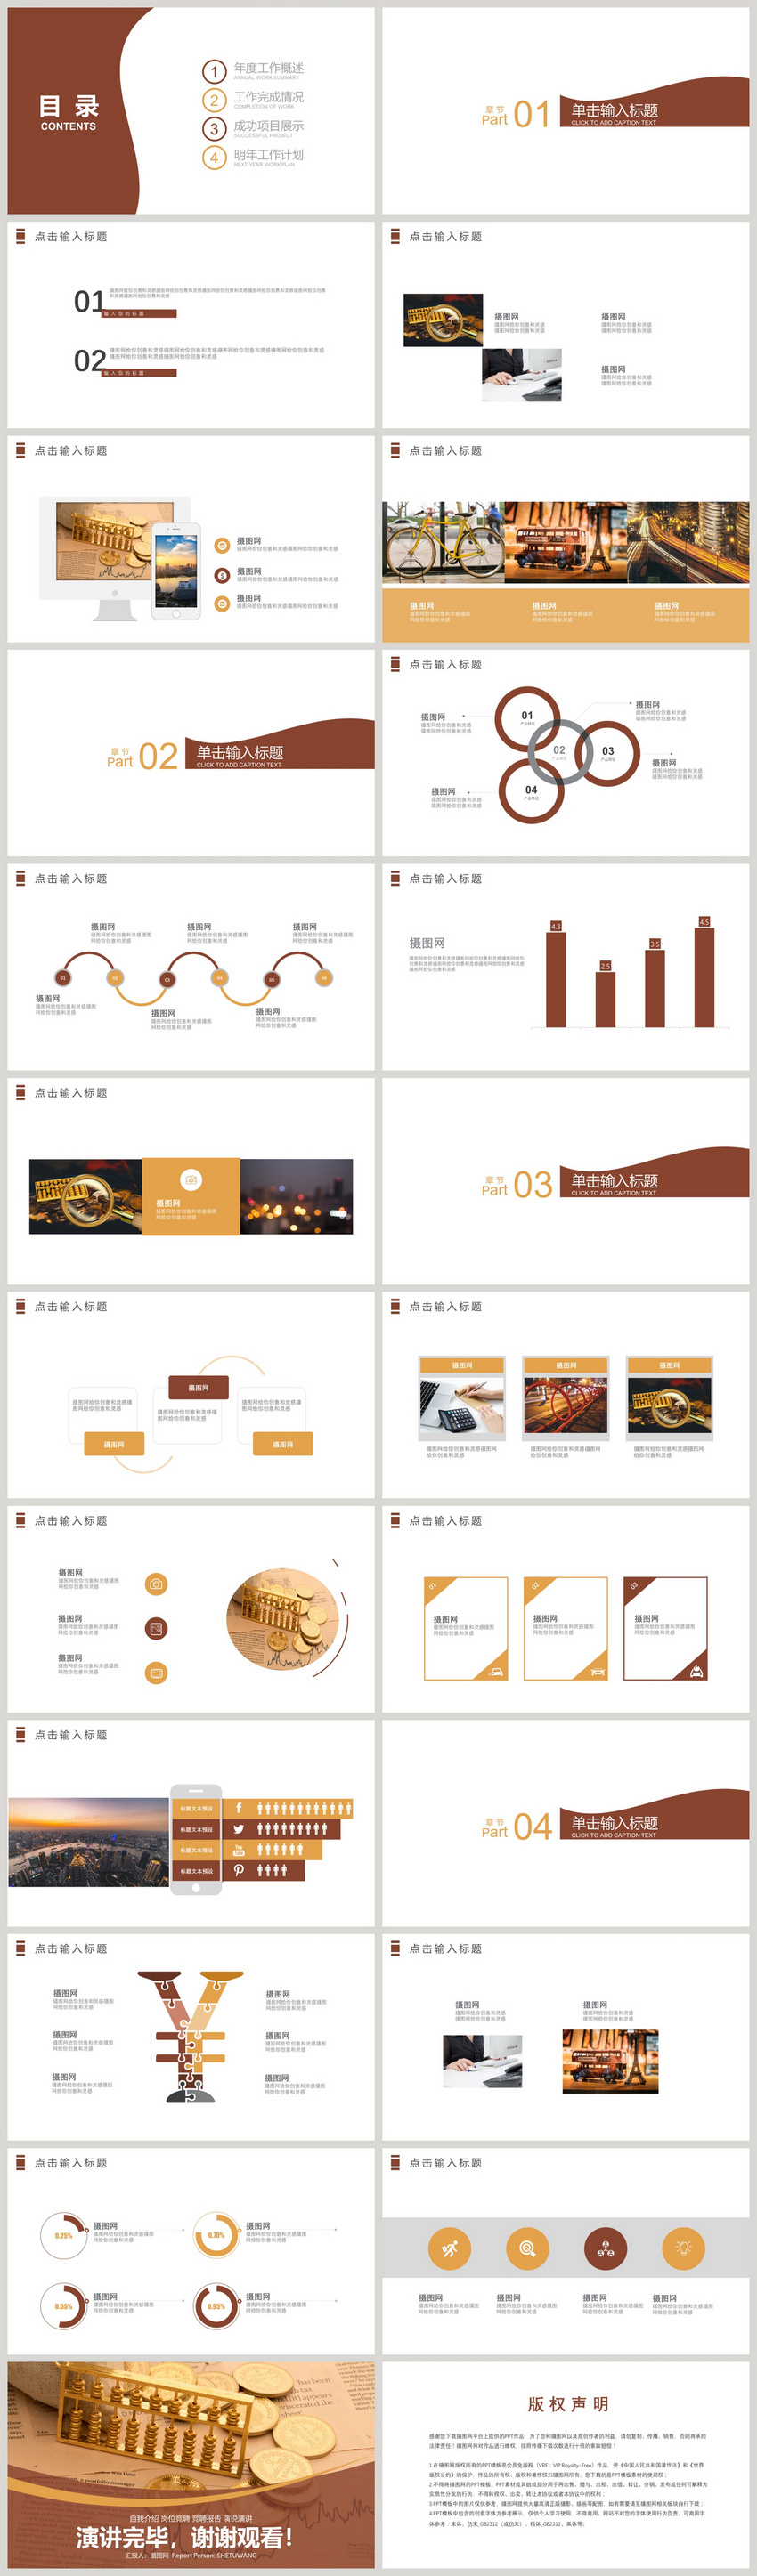 Work report ppt template for fashion finance industry